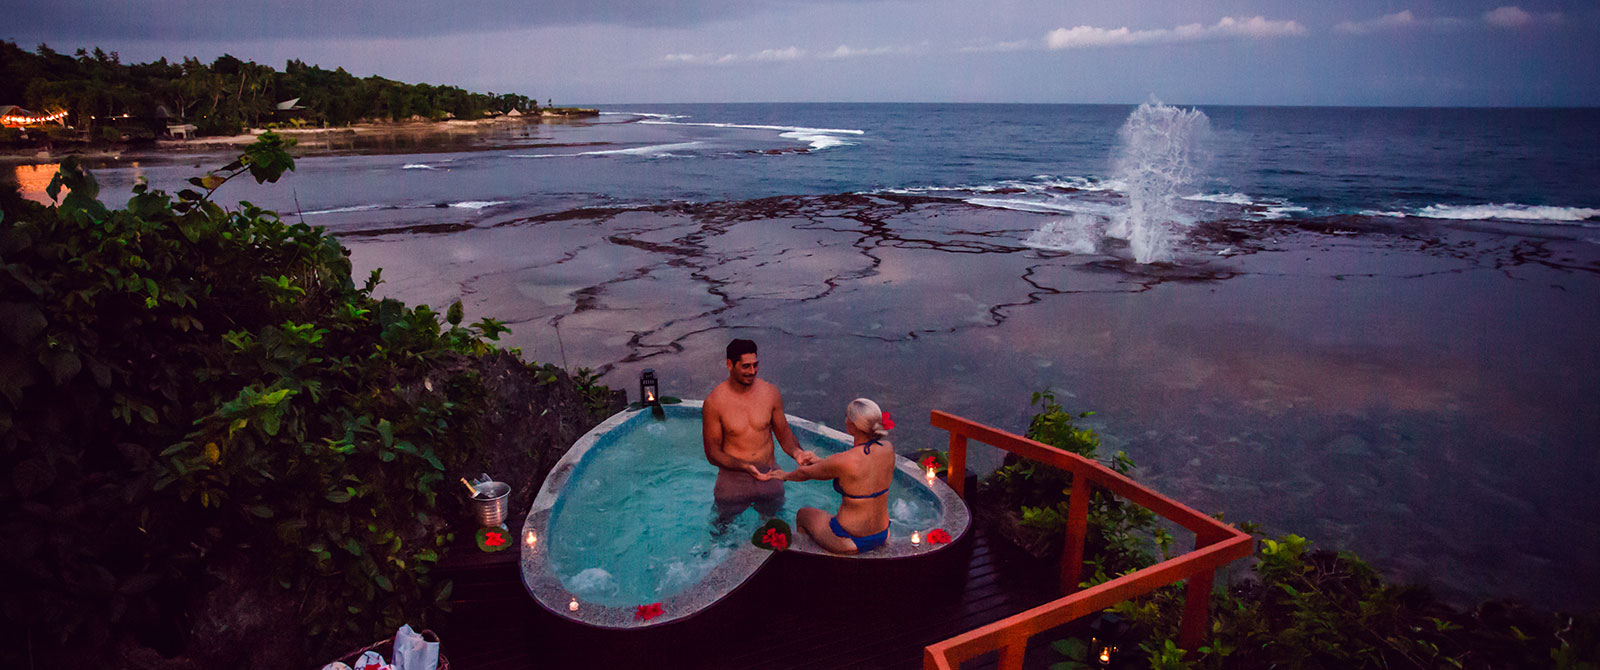 Heart Shaped Pool at Namale Resort Fiji - Honeymoon Packages